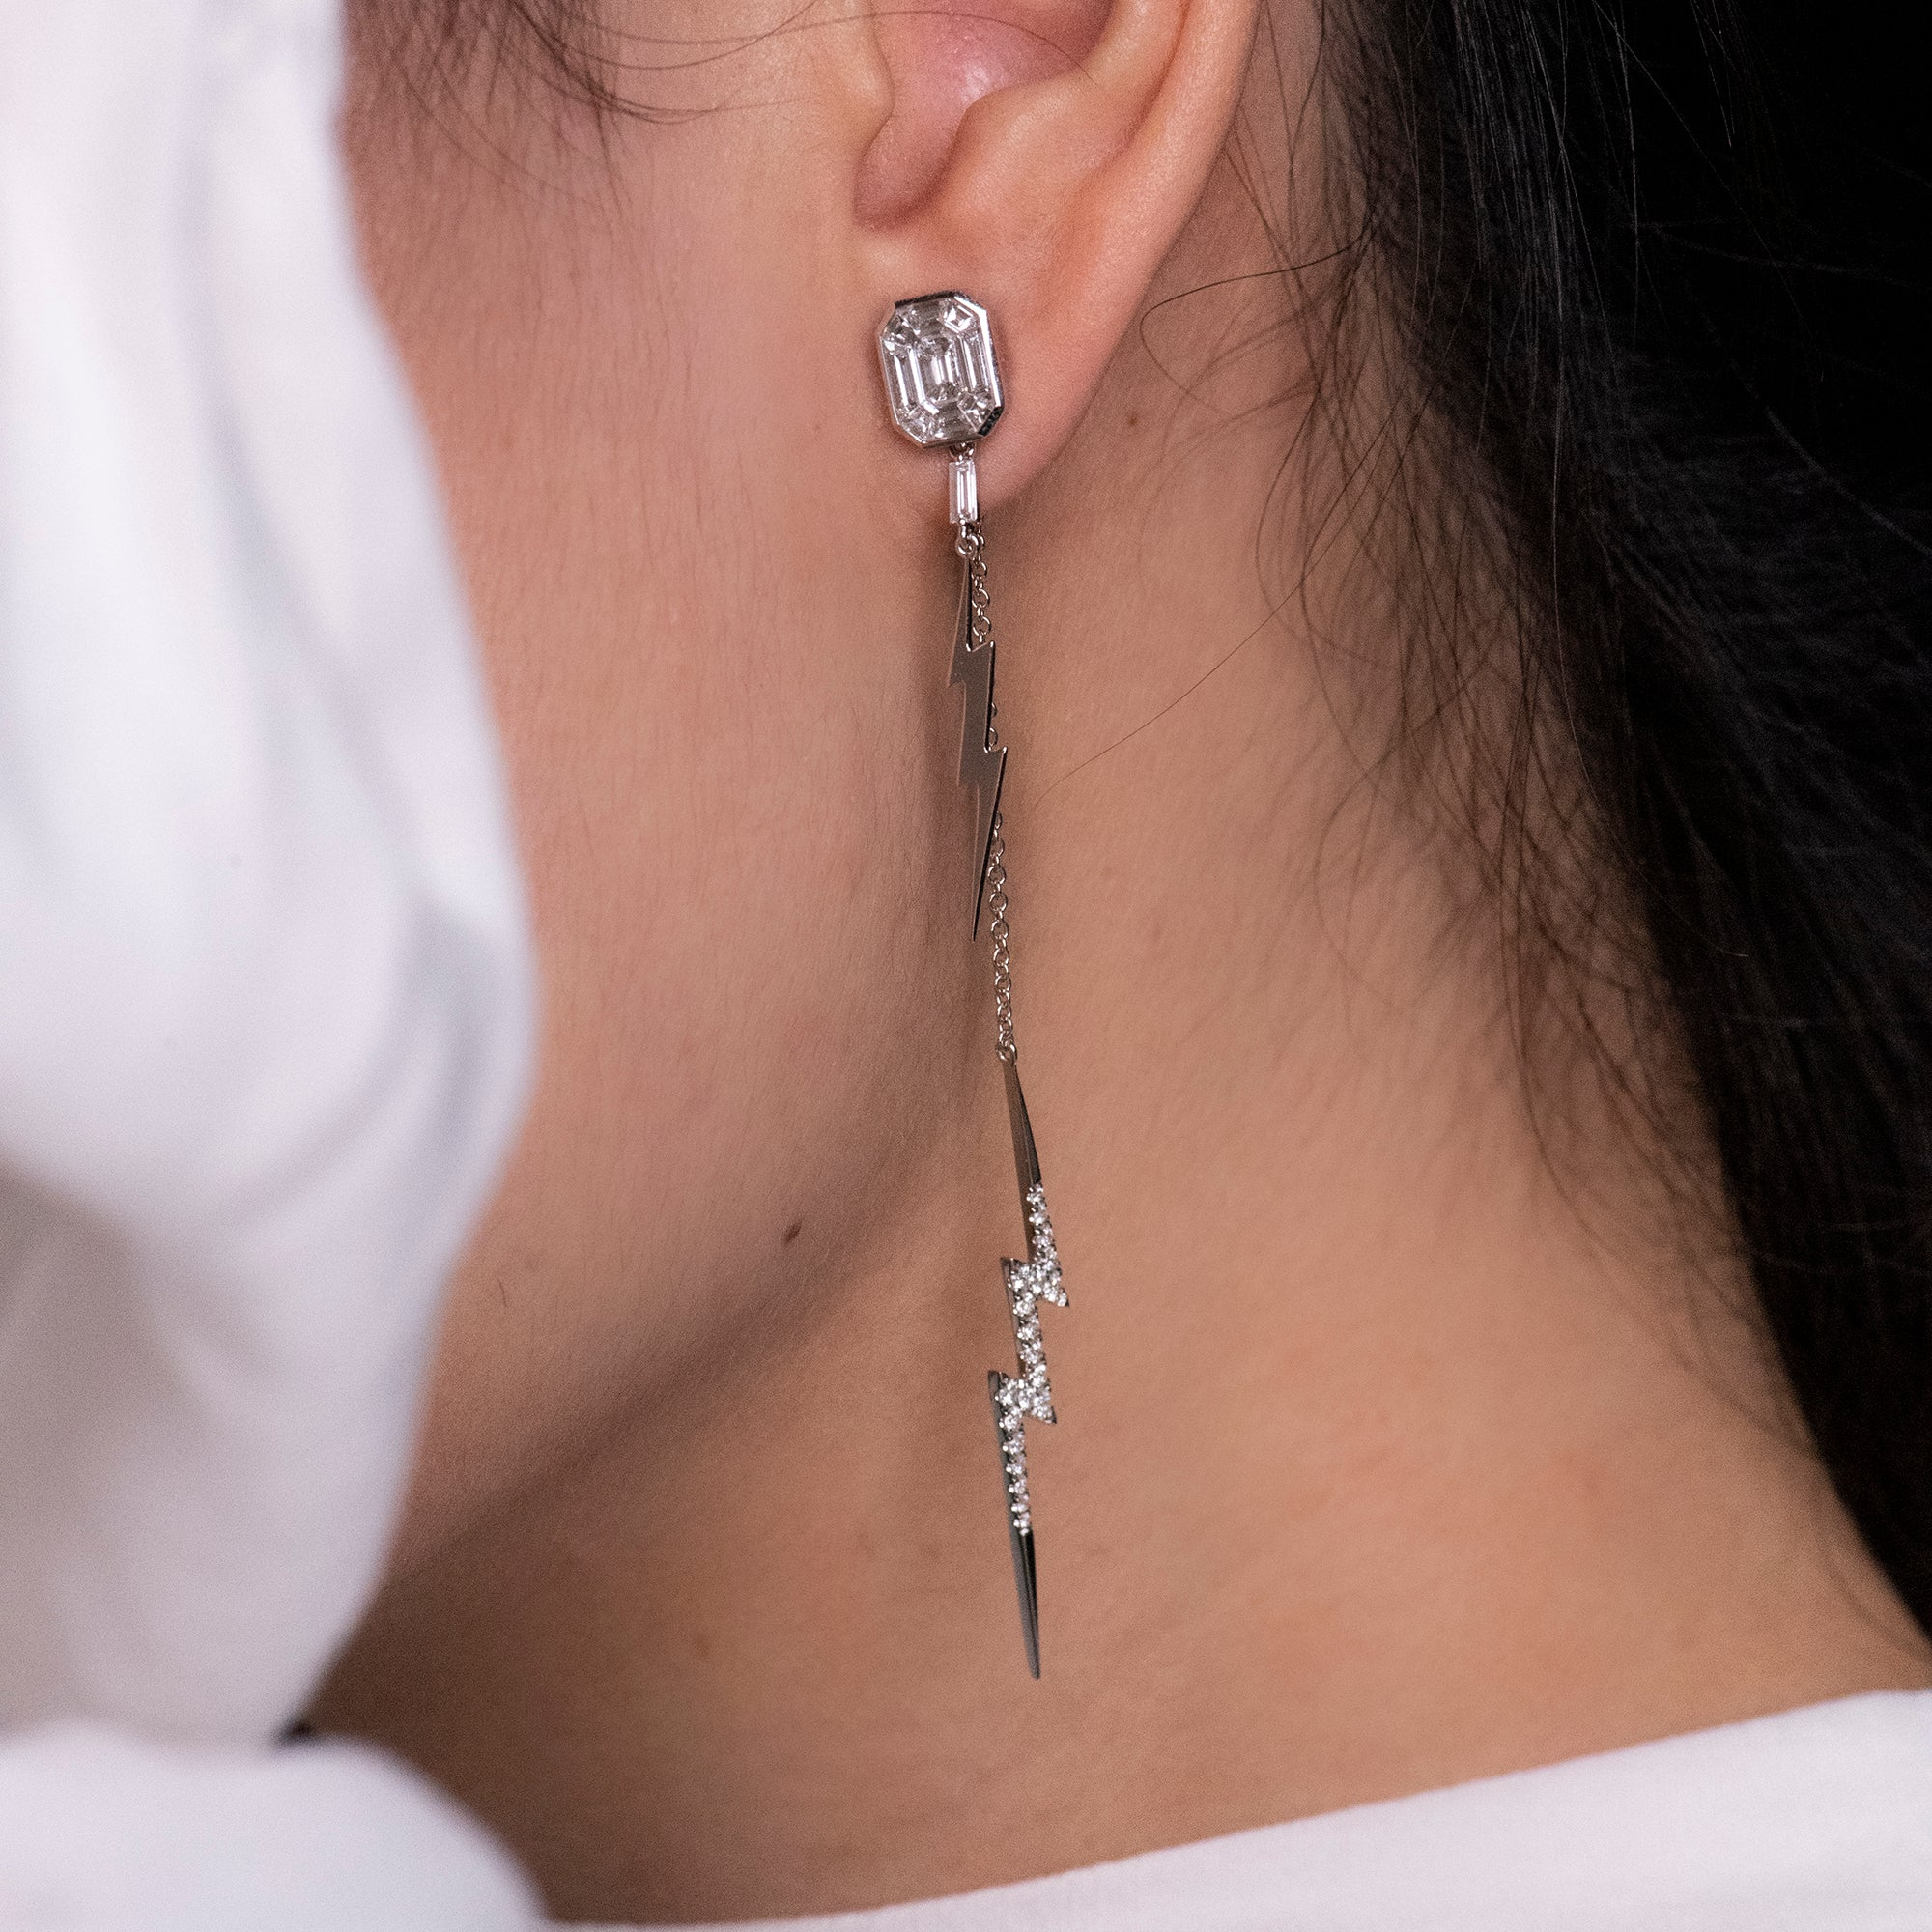 White Gold Emerald Studs with Bolt Accessories